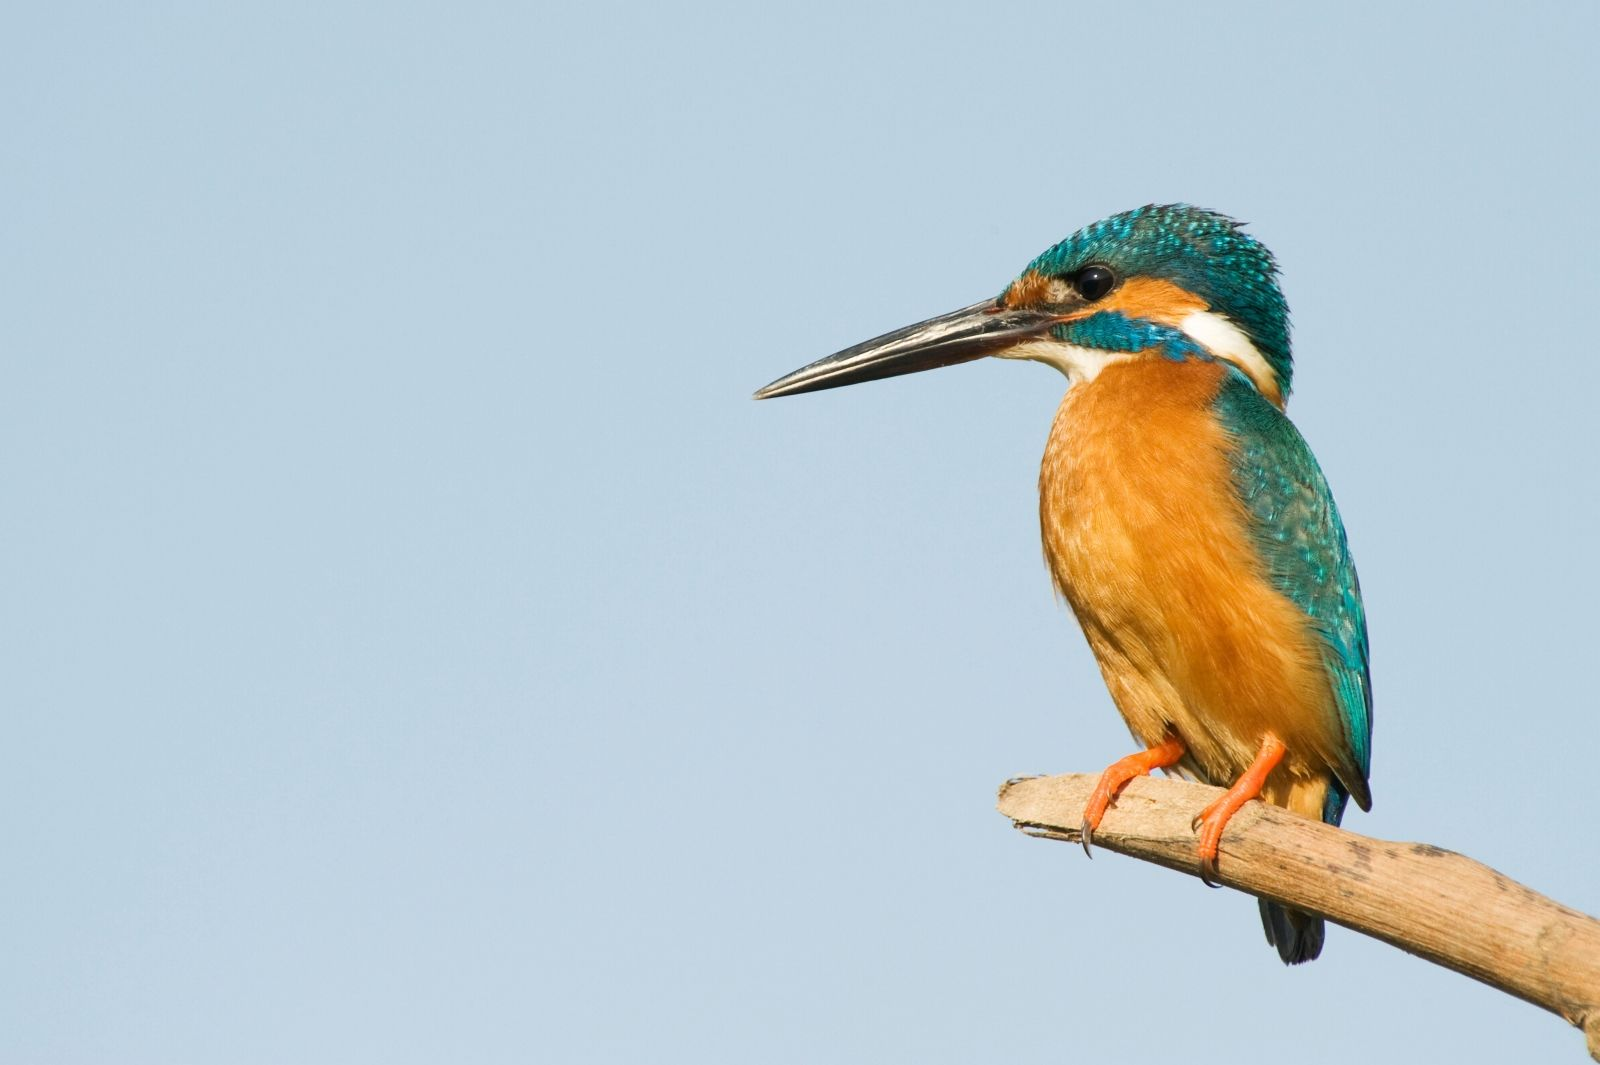 kingfisher-perched-branch